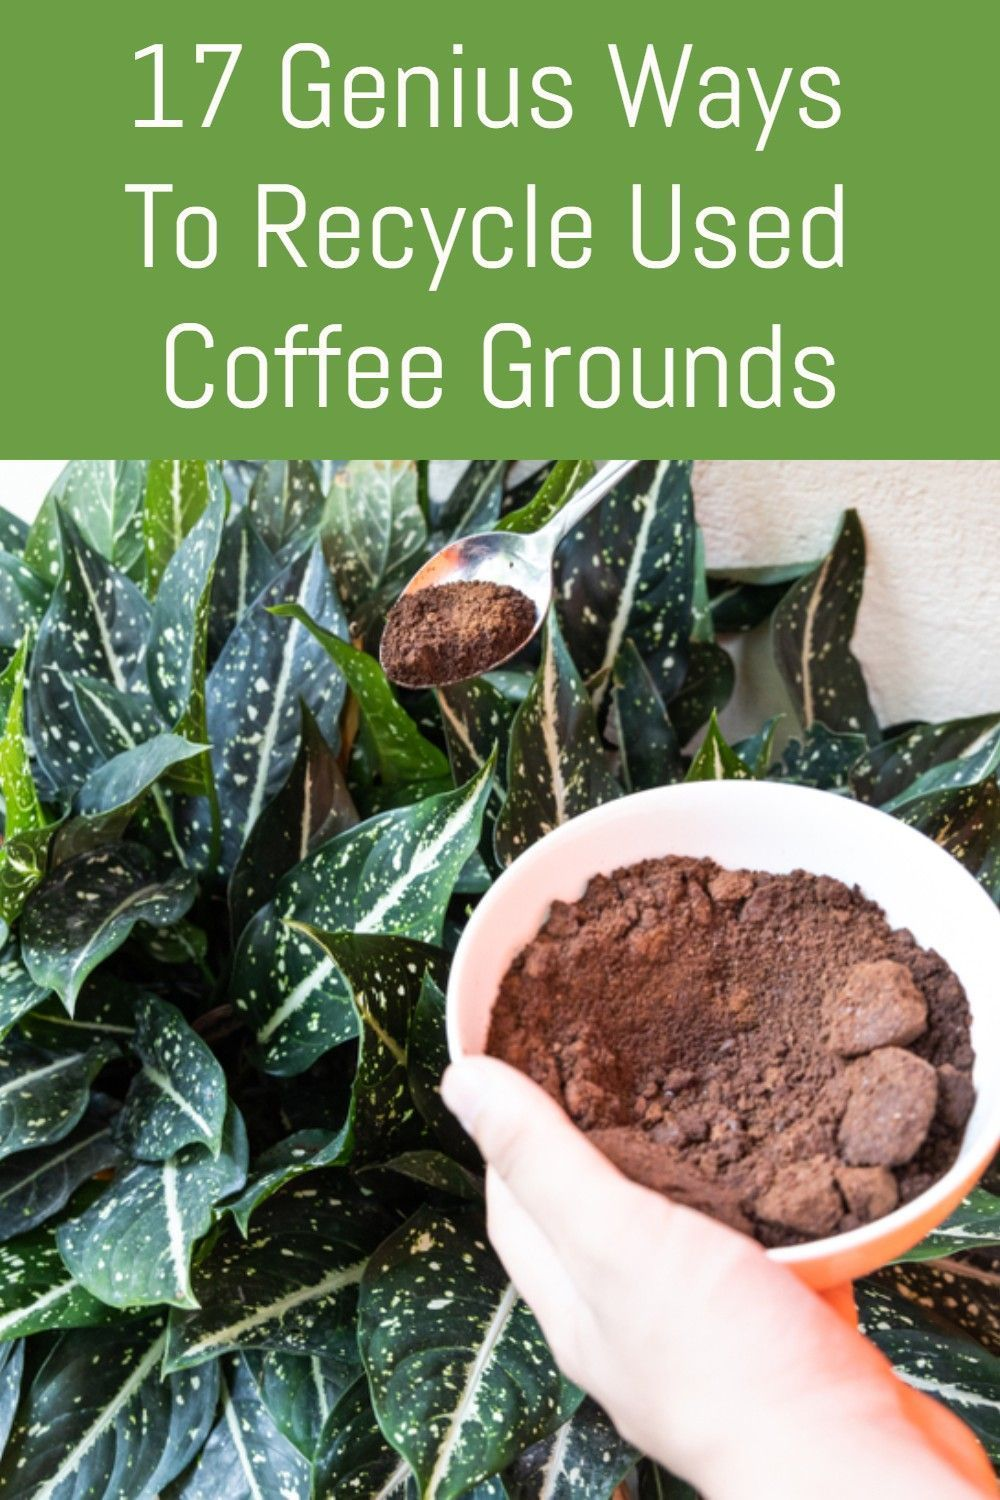 17 Genius Ways To Recycle Used Coffee Grounds in 2020